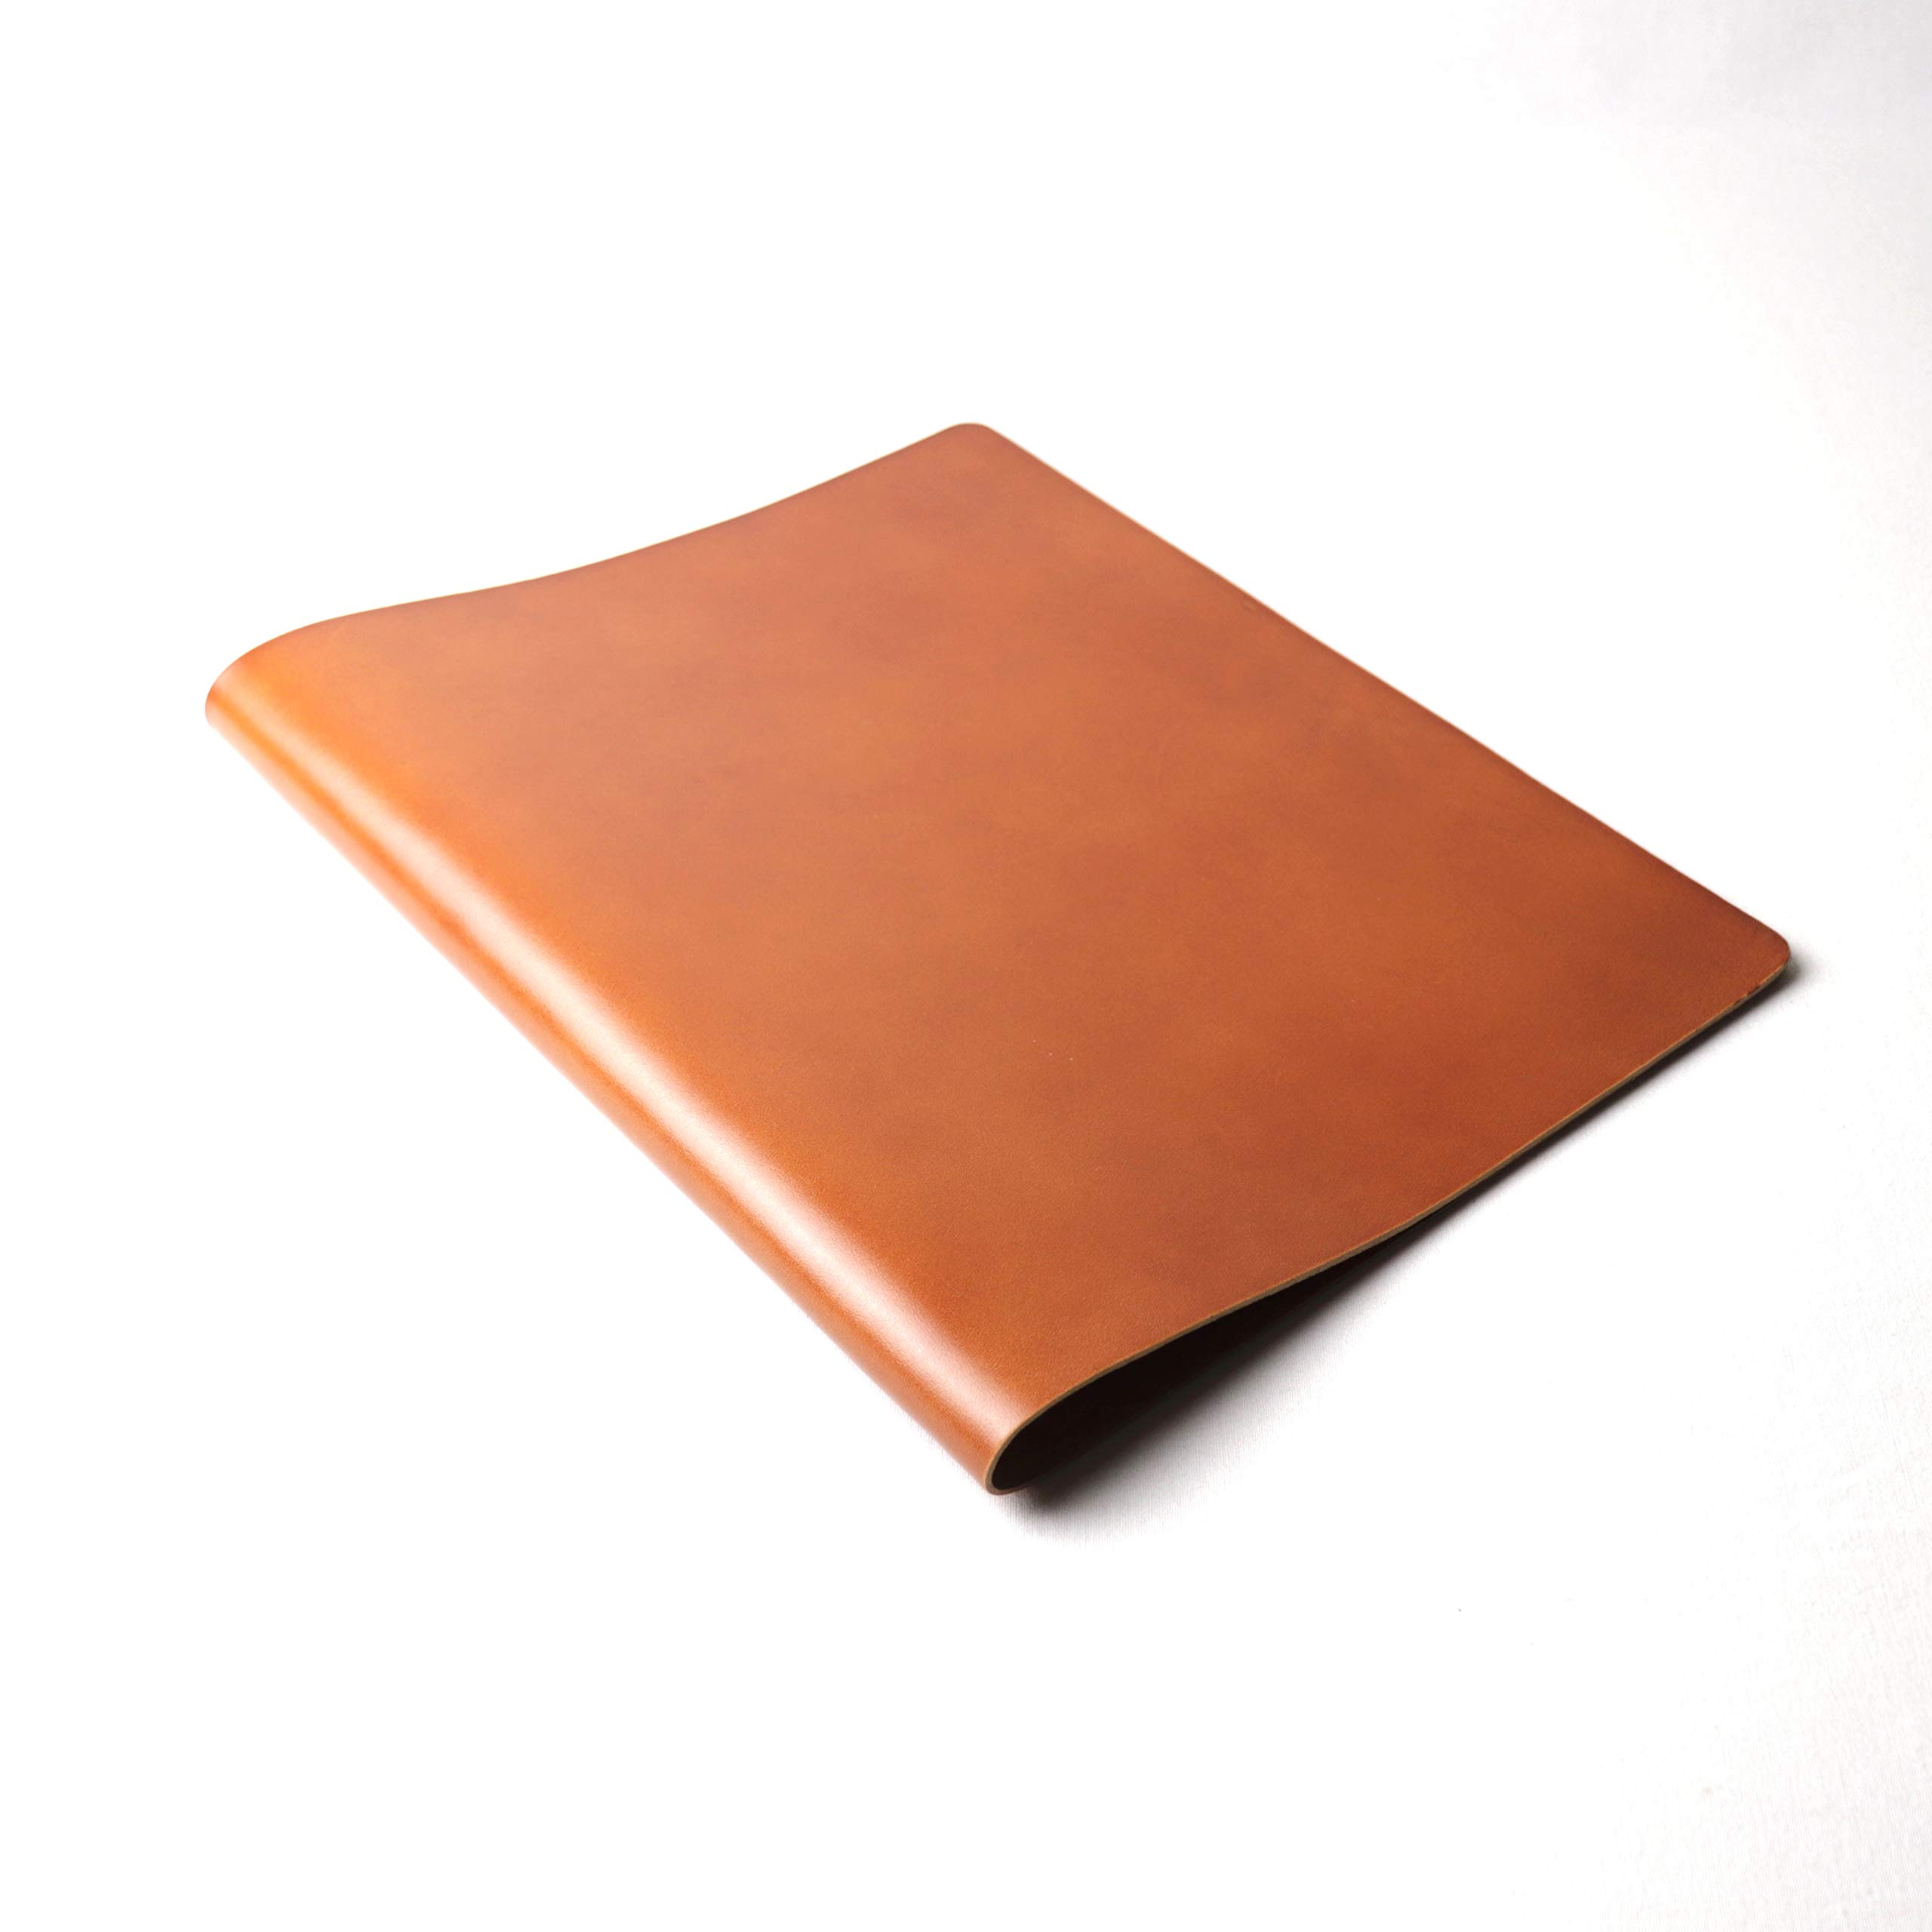 SITUS 3-Post Leather Binder Brown by SITUS